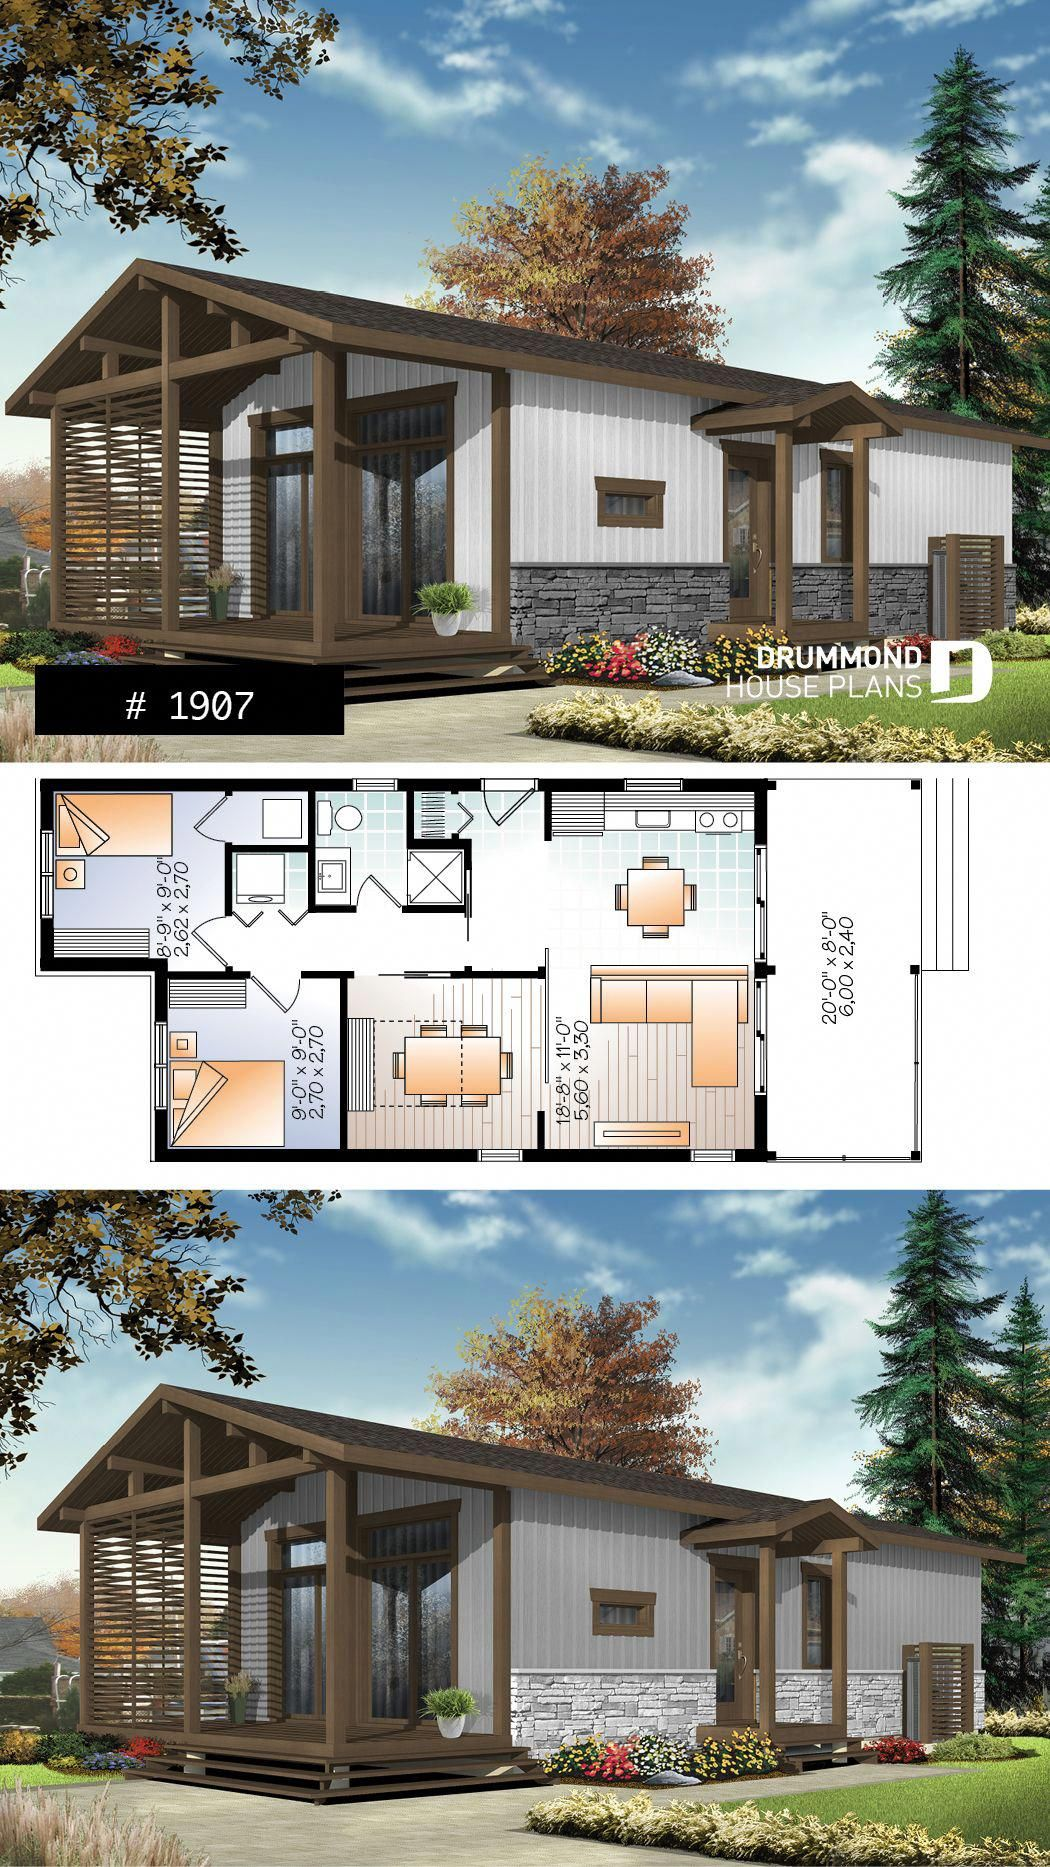 Modern Rustic 700 Sq Ft Tiny Small House Plan Very Versatile 3 Bedrooms Large Covered Deck Log Cabin Cottage House Plans Small House Sims House Plans